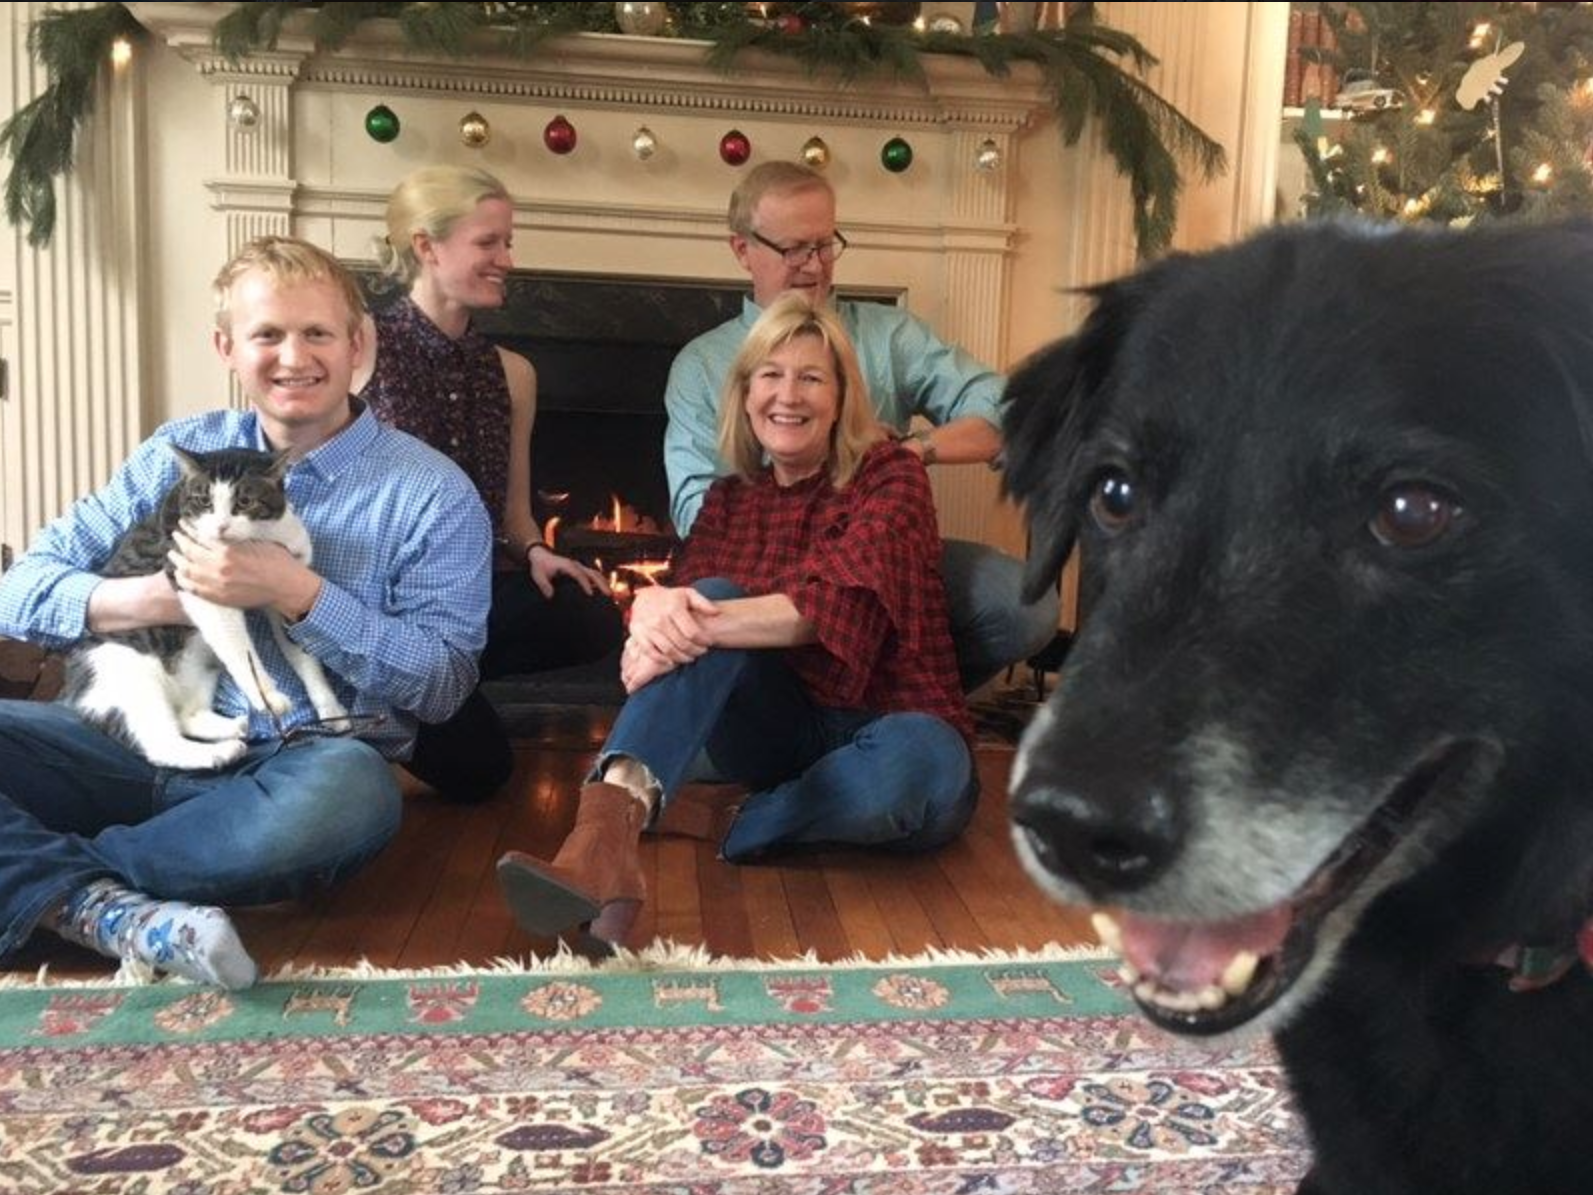 Dr. Robert Kyler with his family and Fritz, the photobombing dog, in their home in Staunton, Virginia, in December 2017. On July 20, 2018, Kyler was in a bike accident that left him paralyzed from the waist down.